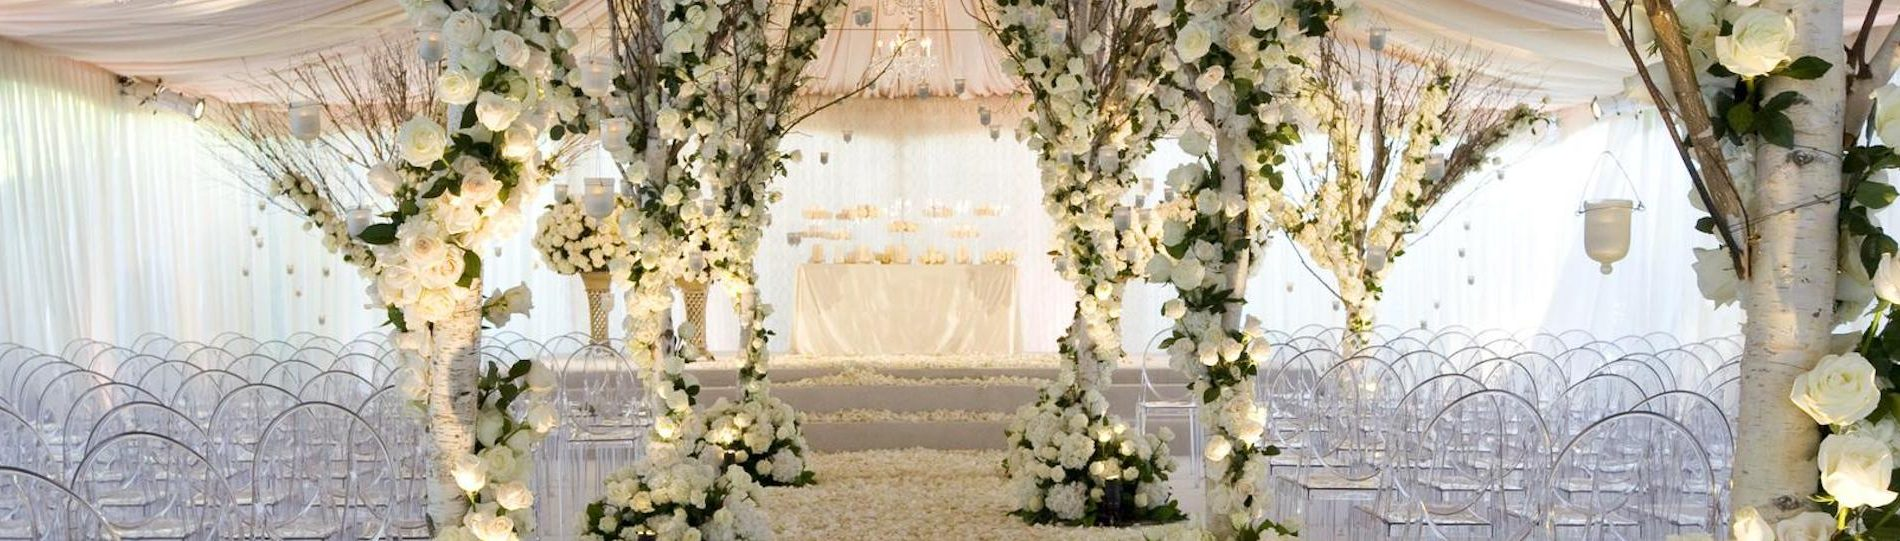 top wedding planning companies adelaide